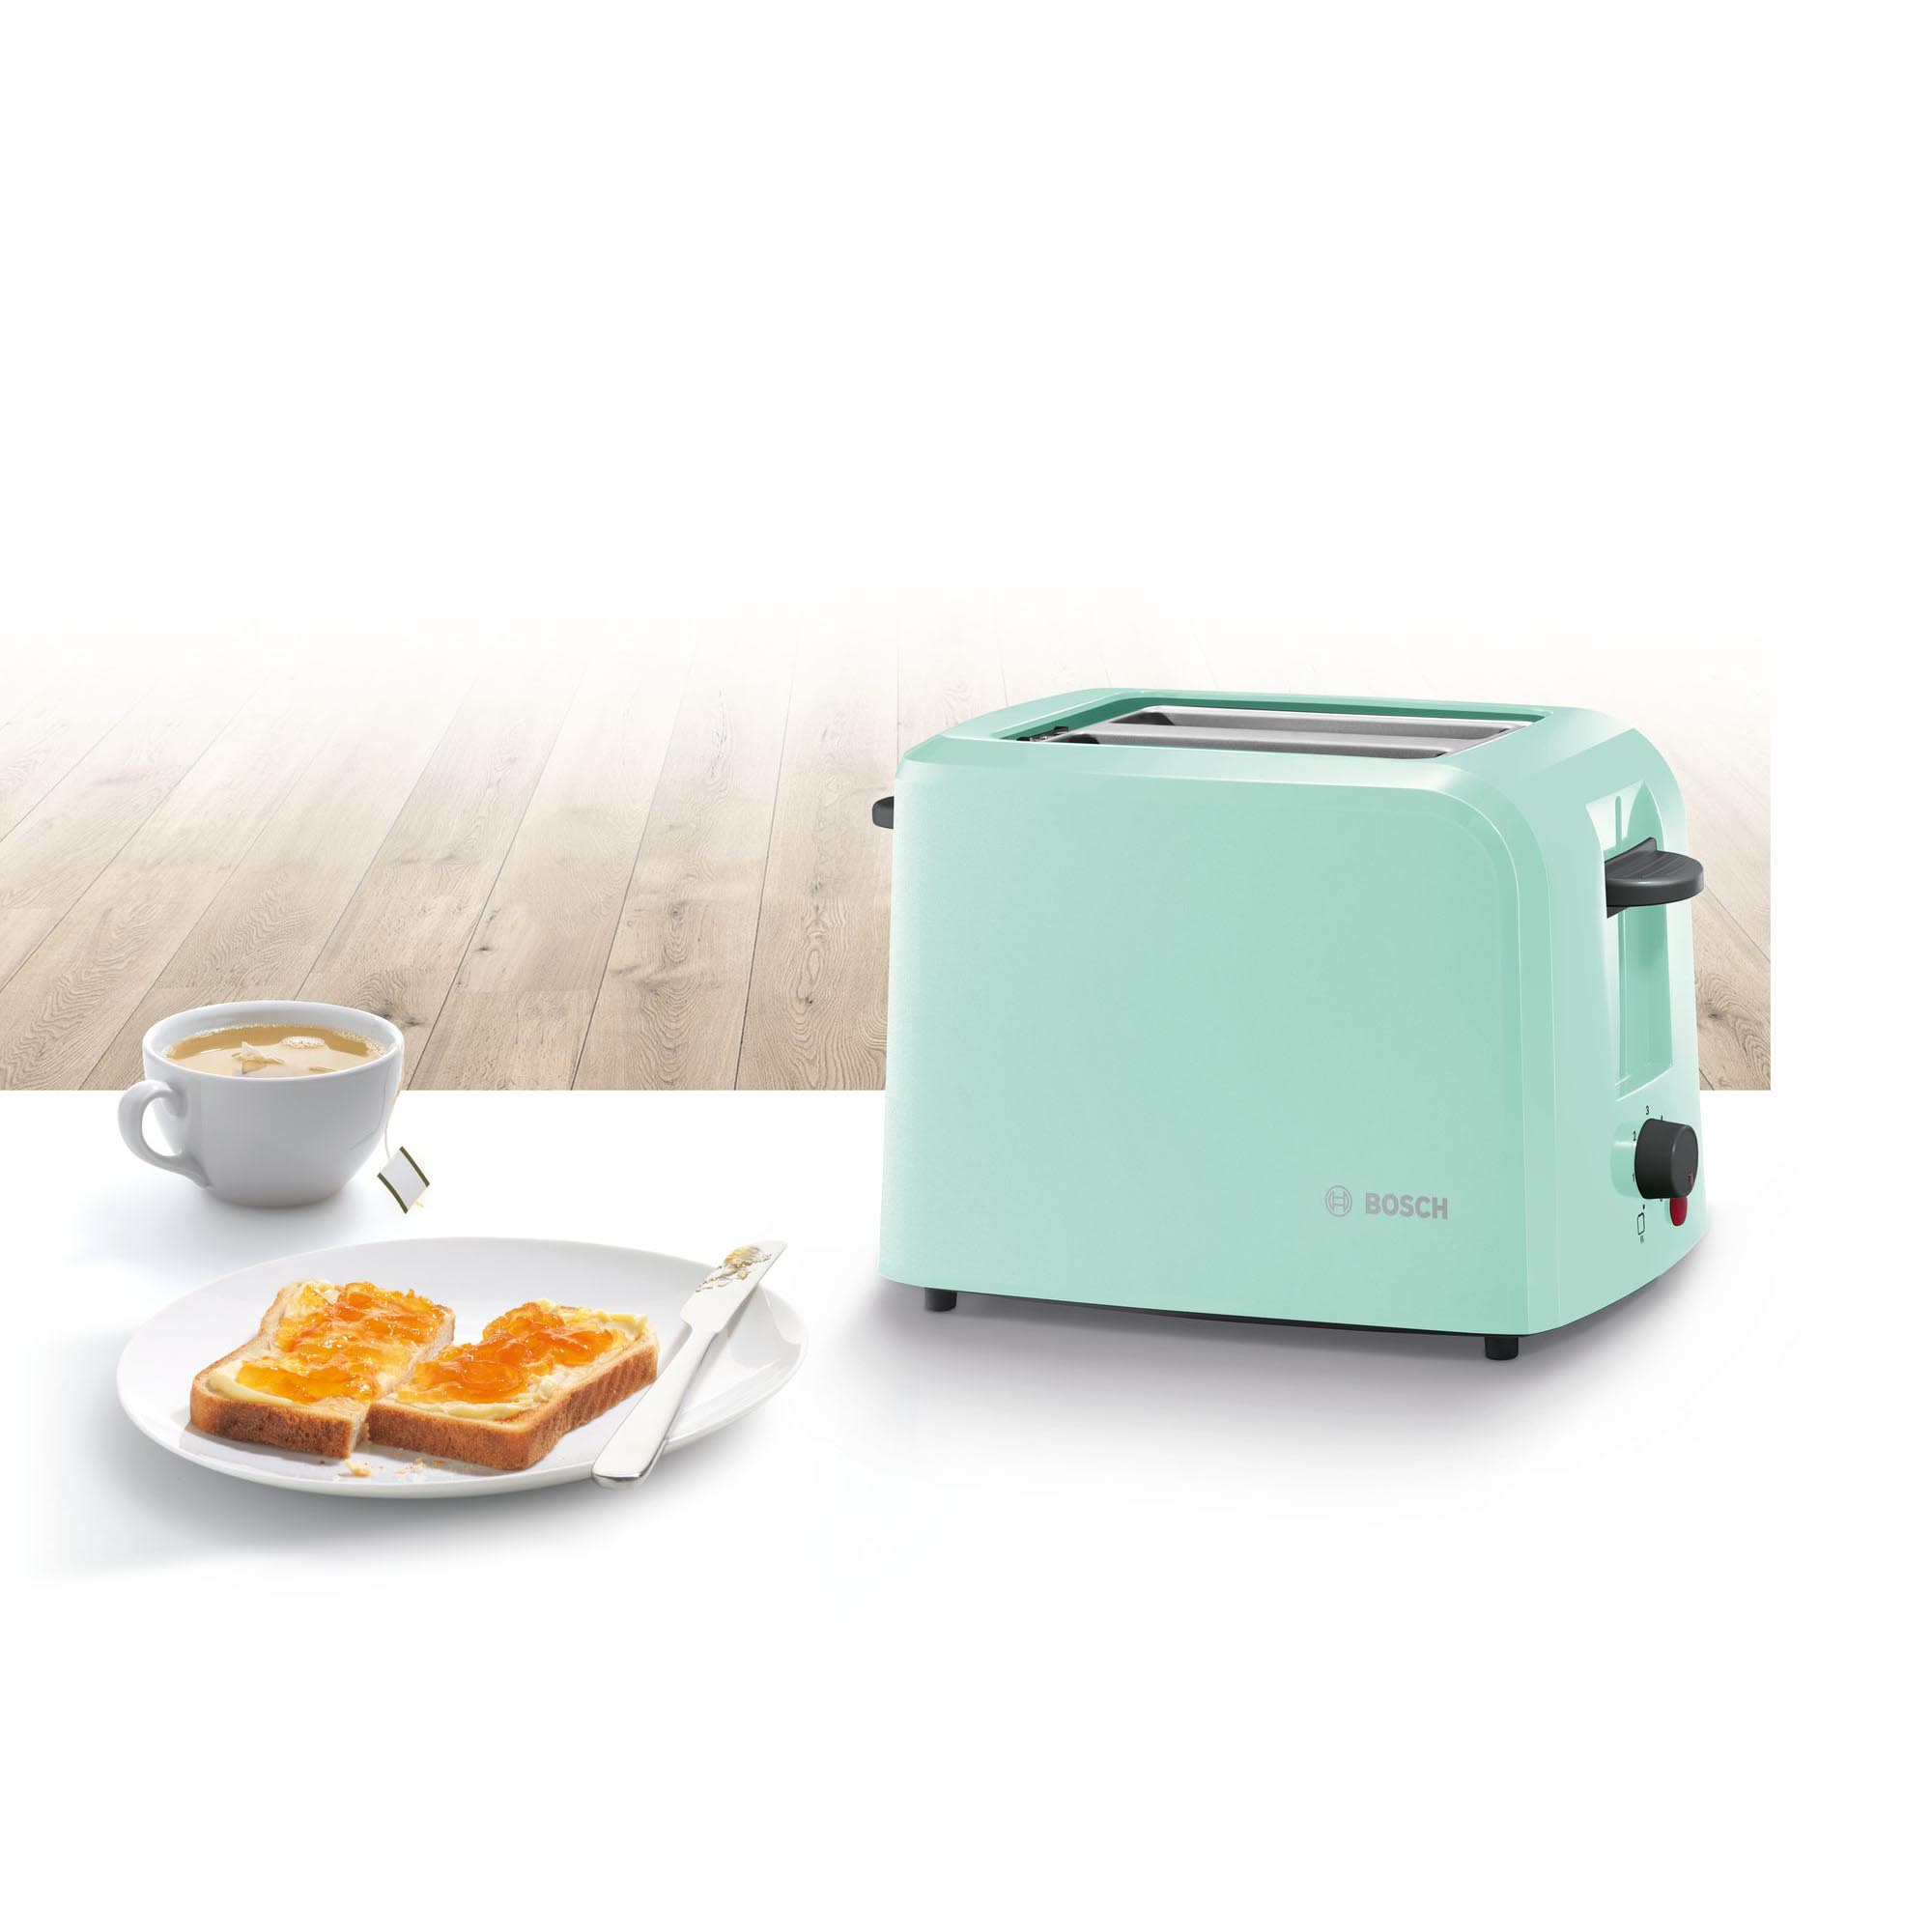 Bosch TAT3A012 Electric Toaster - CMC Electric - Buy Electrical ...